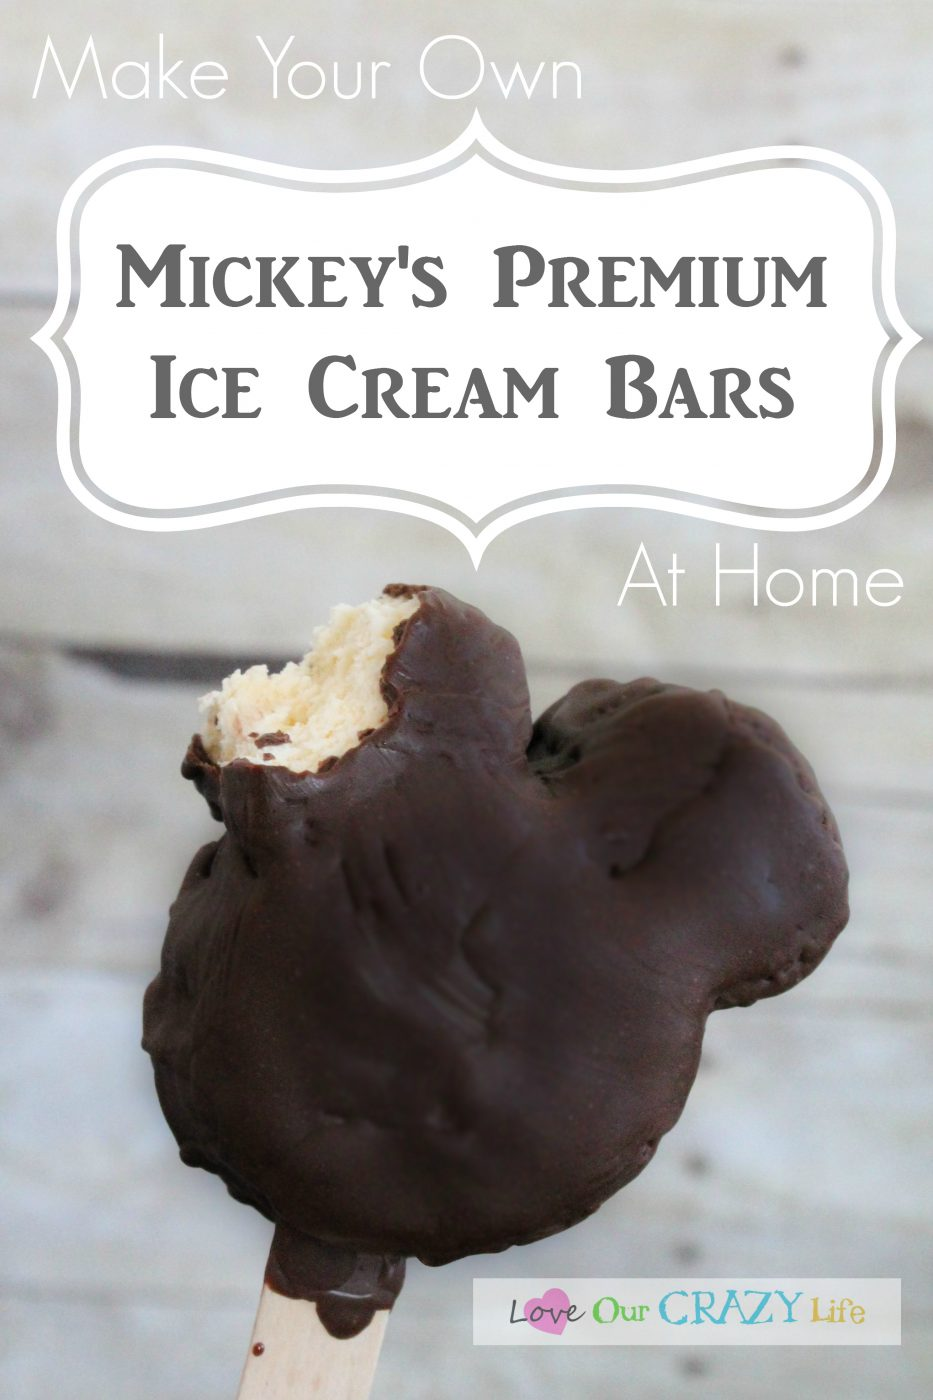 Mickey Premium Ice Cream Bars at home? Yes Please! Check out the tutorial here. Great way to bring some Disney magic home.